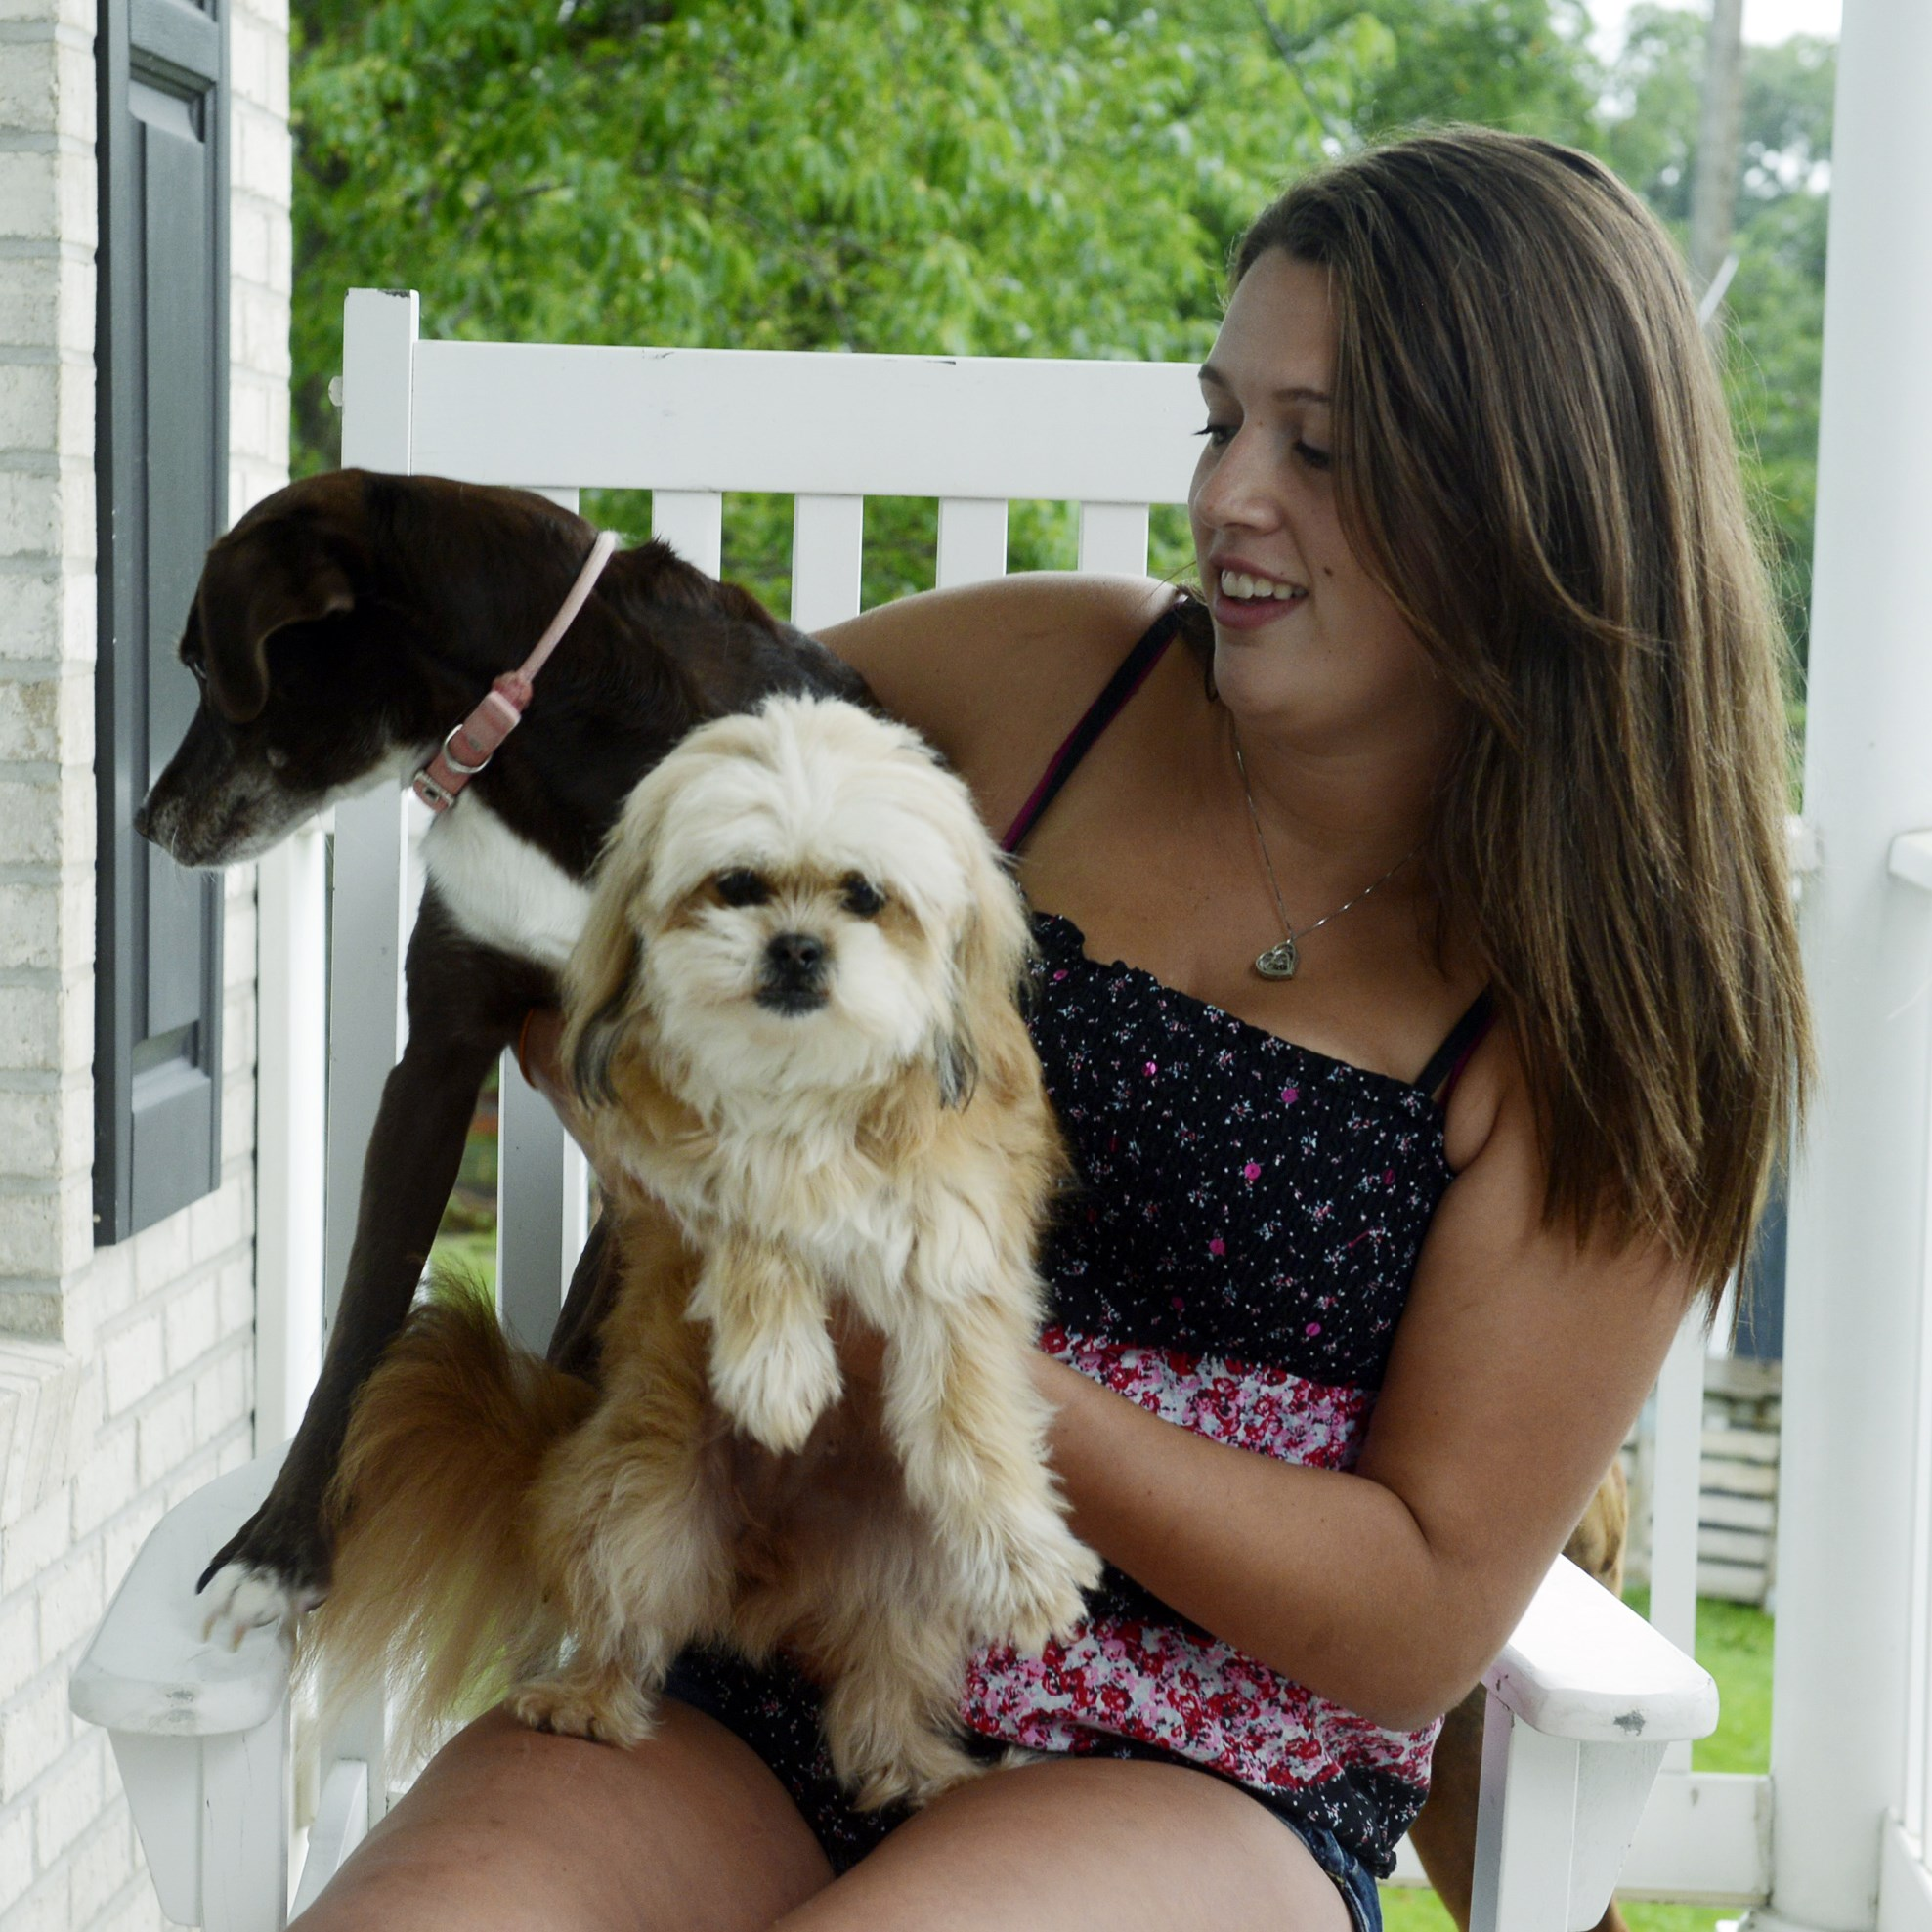 Katelyn Cerciello, 18, of McDonald with a couple of her family's dogs, Gracie, left, and Deliah. Ms. Cerciello posted a story on Facebook and photos about Petland in Robinson, where she had worked and questioned the care the animals were getting.